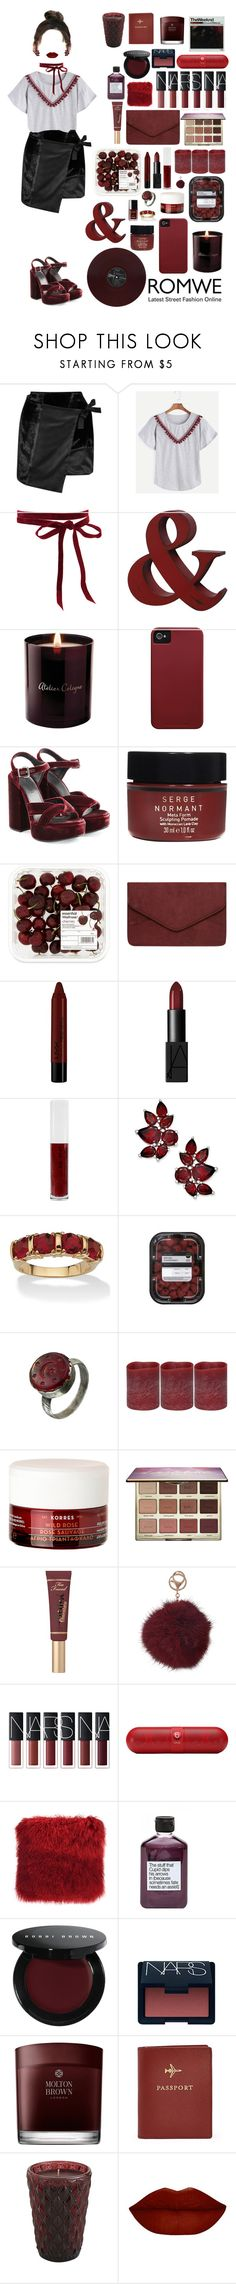 """""""Untitled #458"""" by xxeucliffexx ❤ liked on Polyvore featuring Missoni, Atelier Cologne, Case-Mate, Jil Sander, Serge Normant, Dorothy Perkins, NYX, Chanel, NARS Cosmetics and Obsessive Compulsive Cosmetics"""